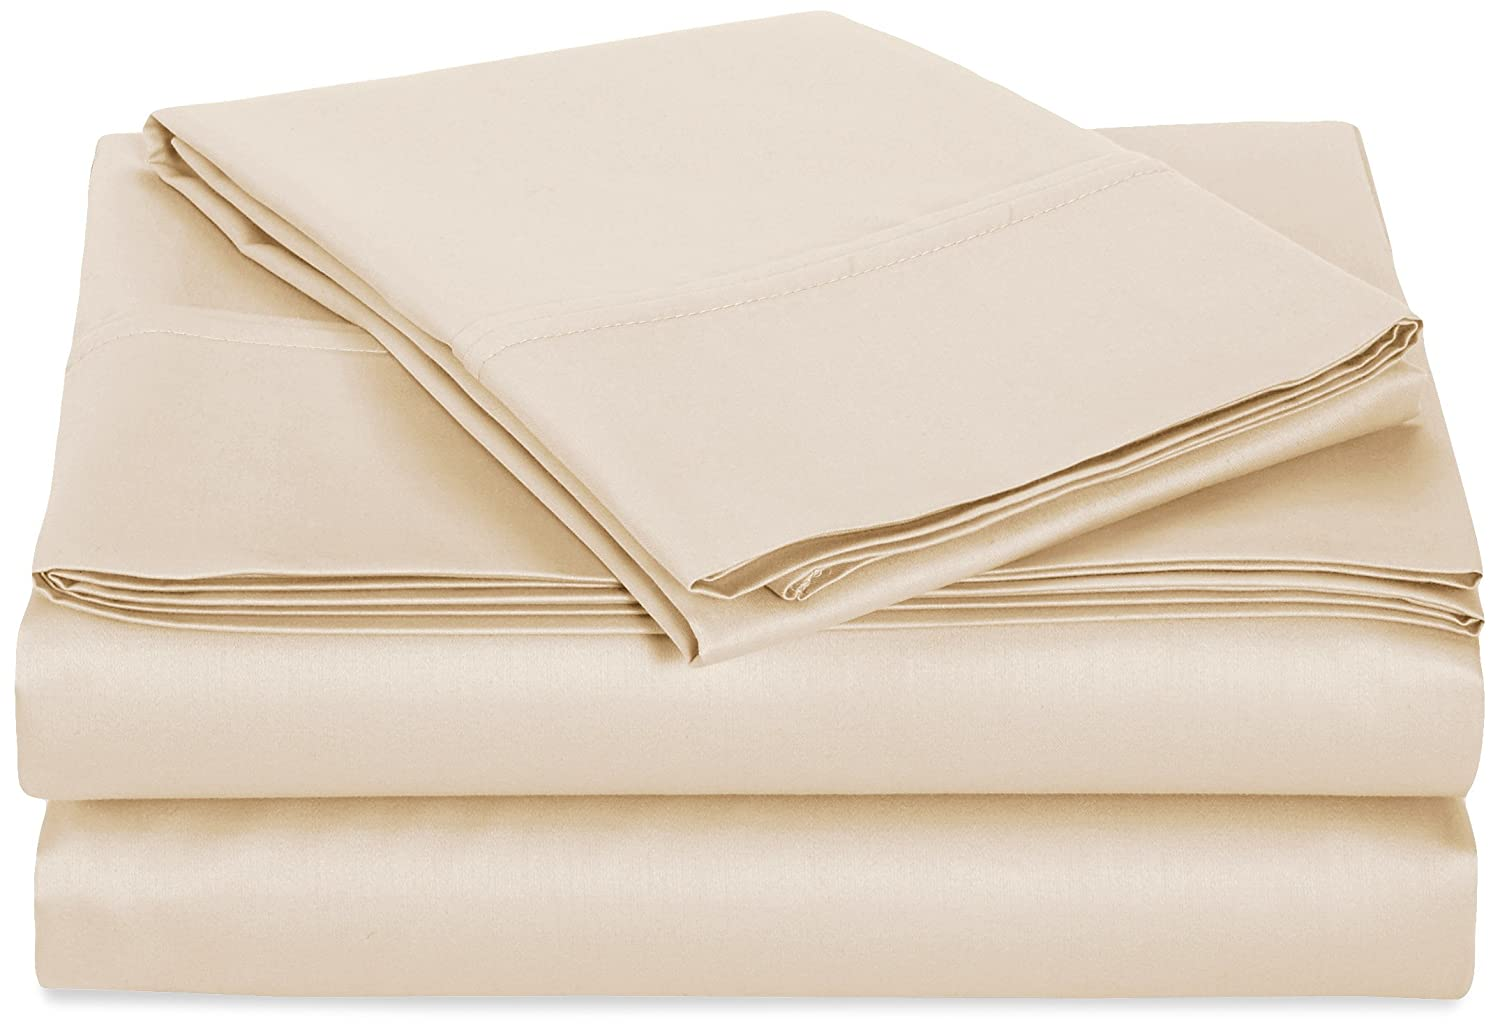 Beige Twin AmazonBasics 400 Thread Count Sheet Set, 100% Cotton, Sateen Finish - Queen, Seafoam Green